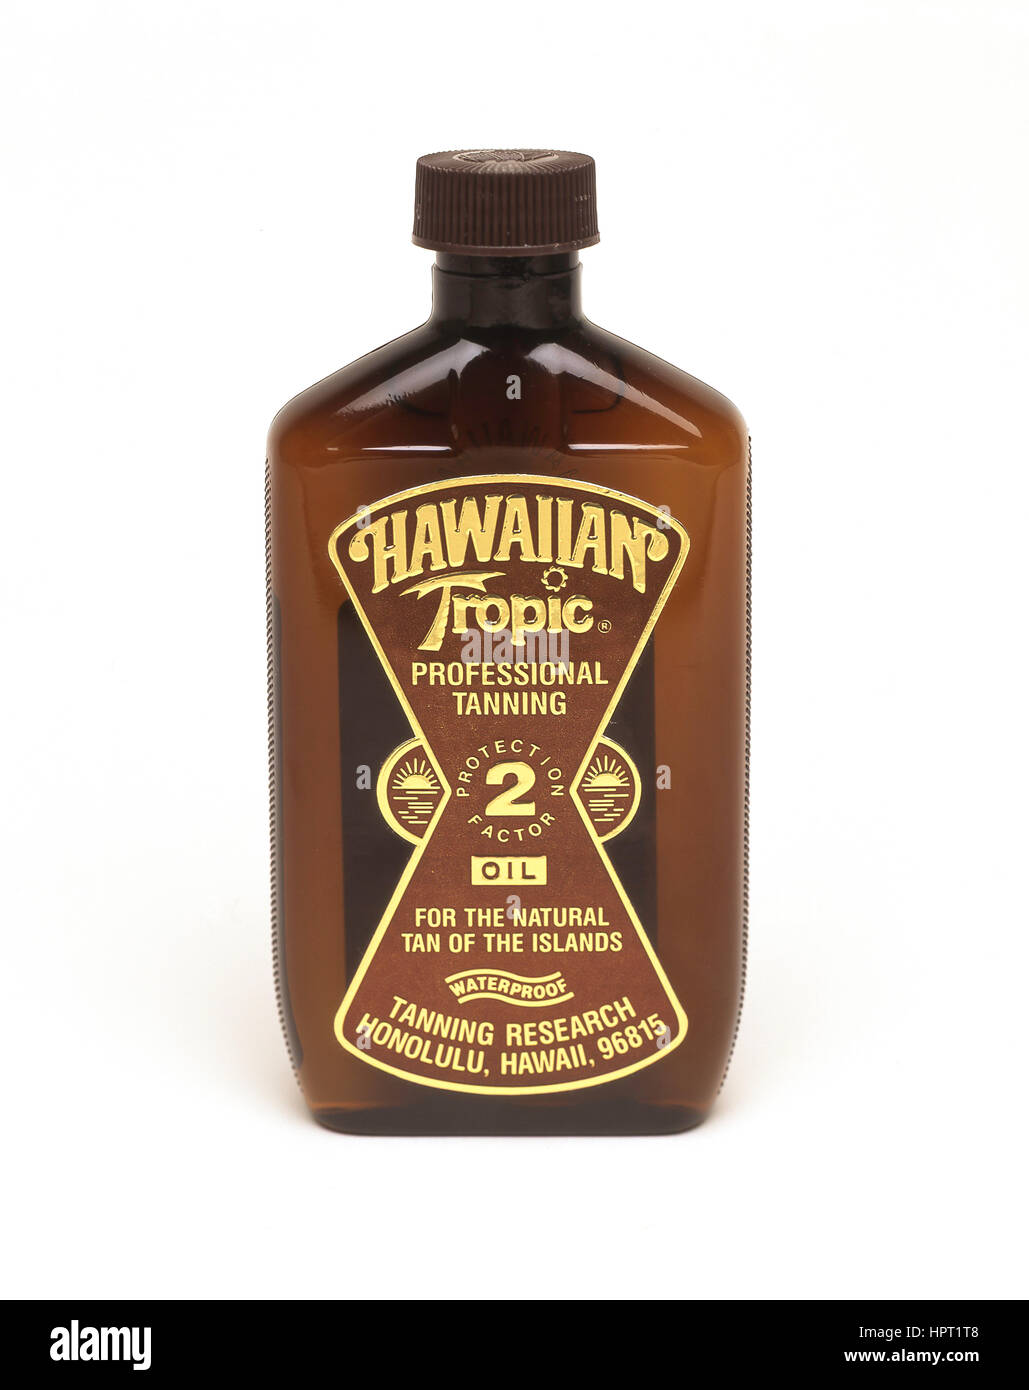 Bottle of Hawaiian Tropic suntan oil, Honolulu, Oahu, Hawaii, United States of America - Stock Image